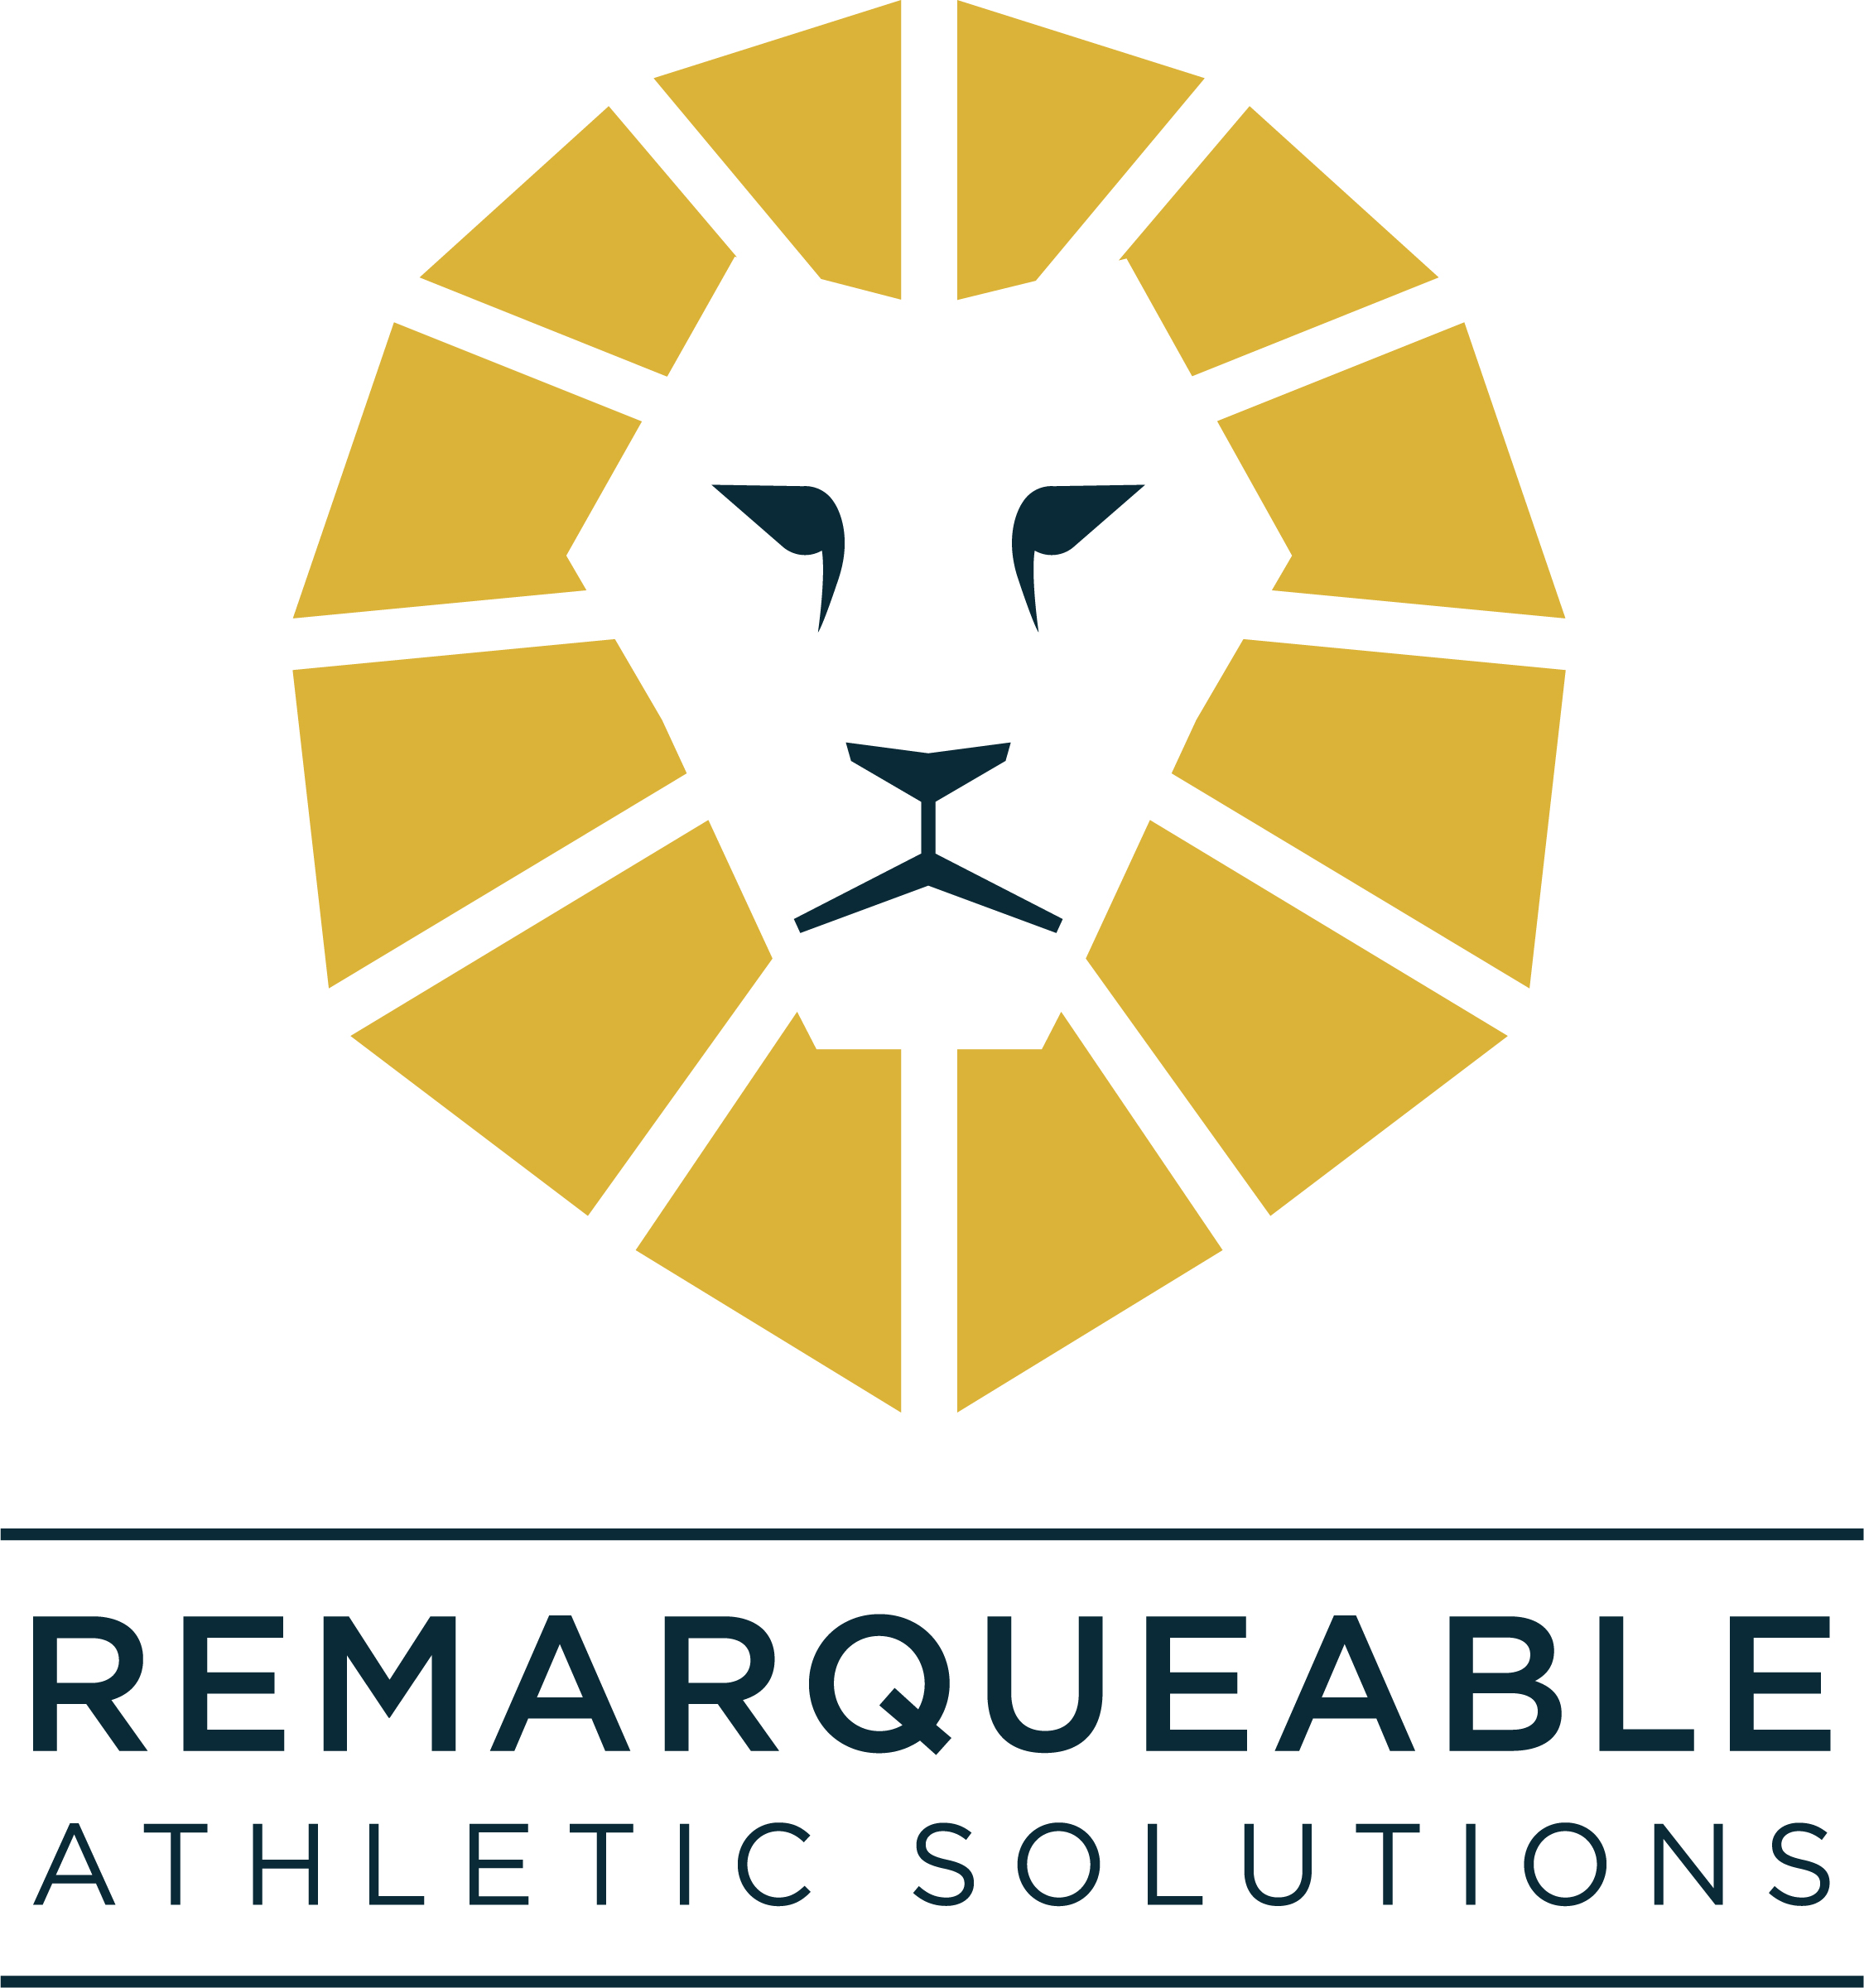 remarqueable-primary_RGB.jpg